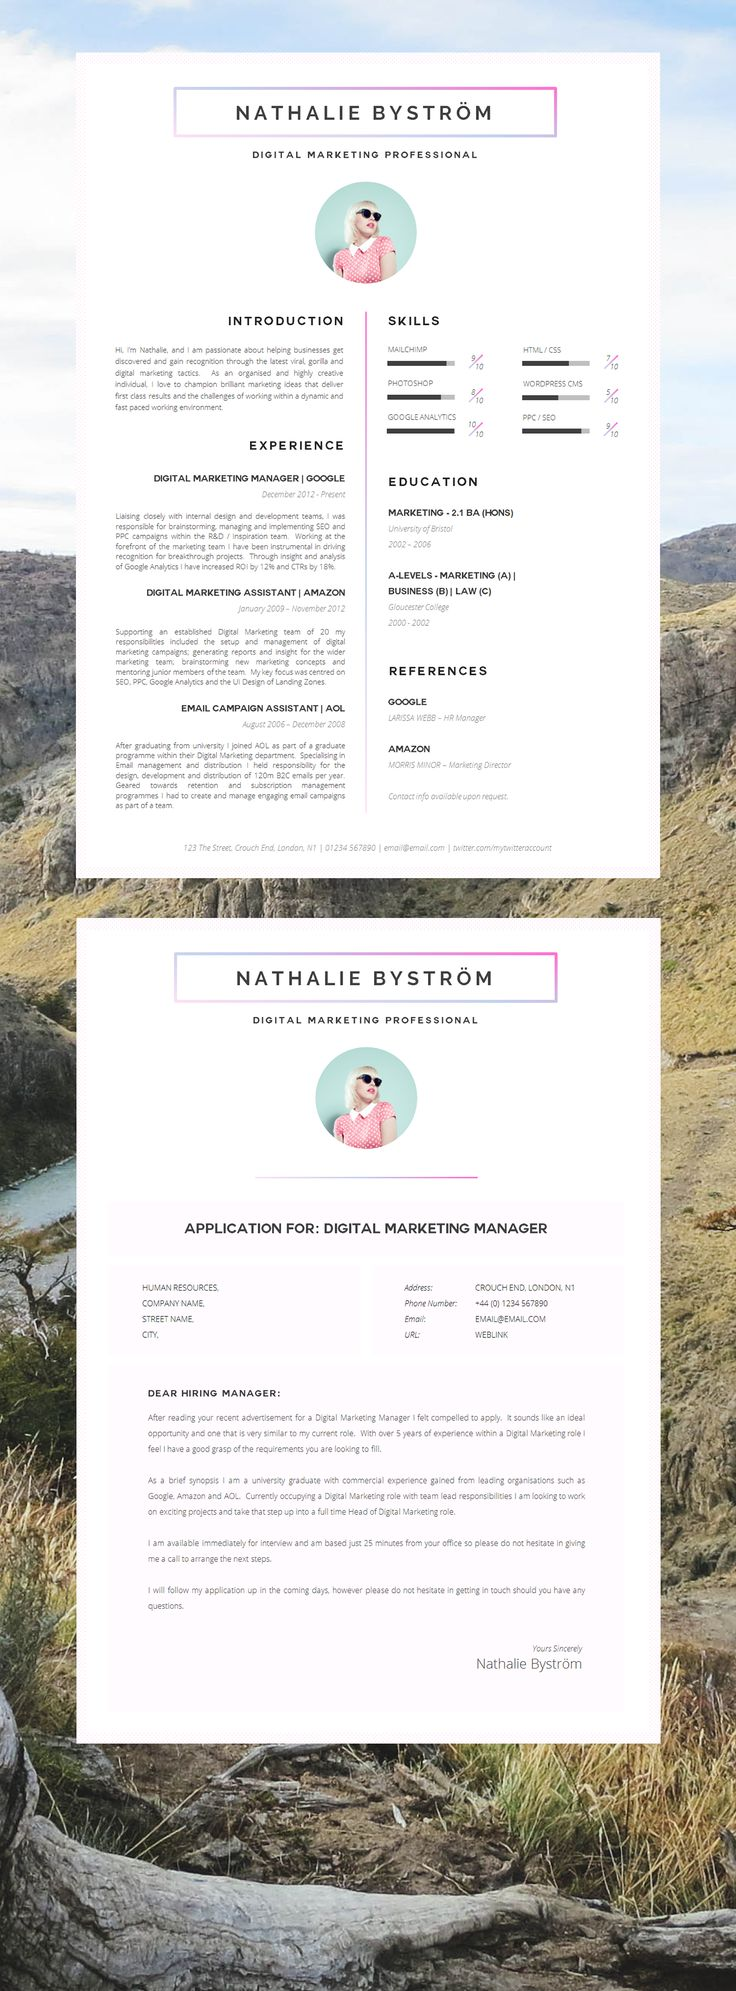 best ideas about creative resume templates cv template reacutesumeacute template for word cover letter advice 1 2 page cv templates included instant mac or pc compton